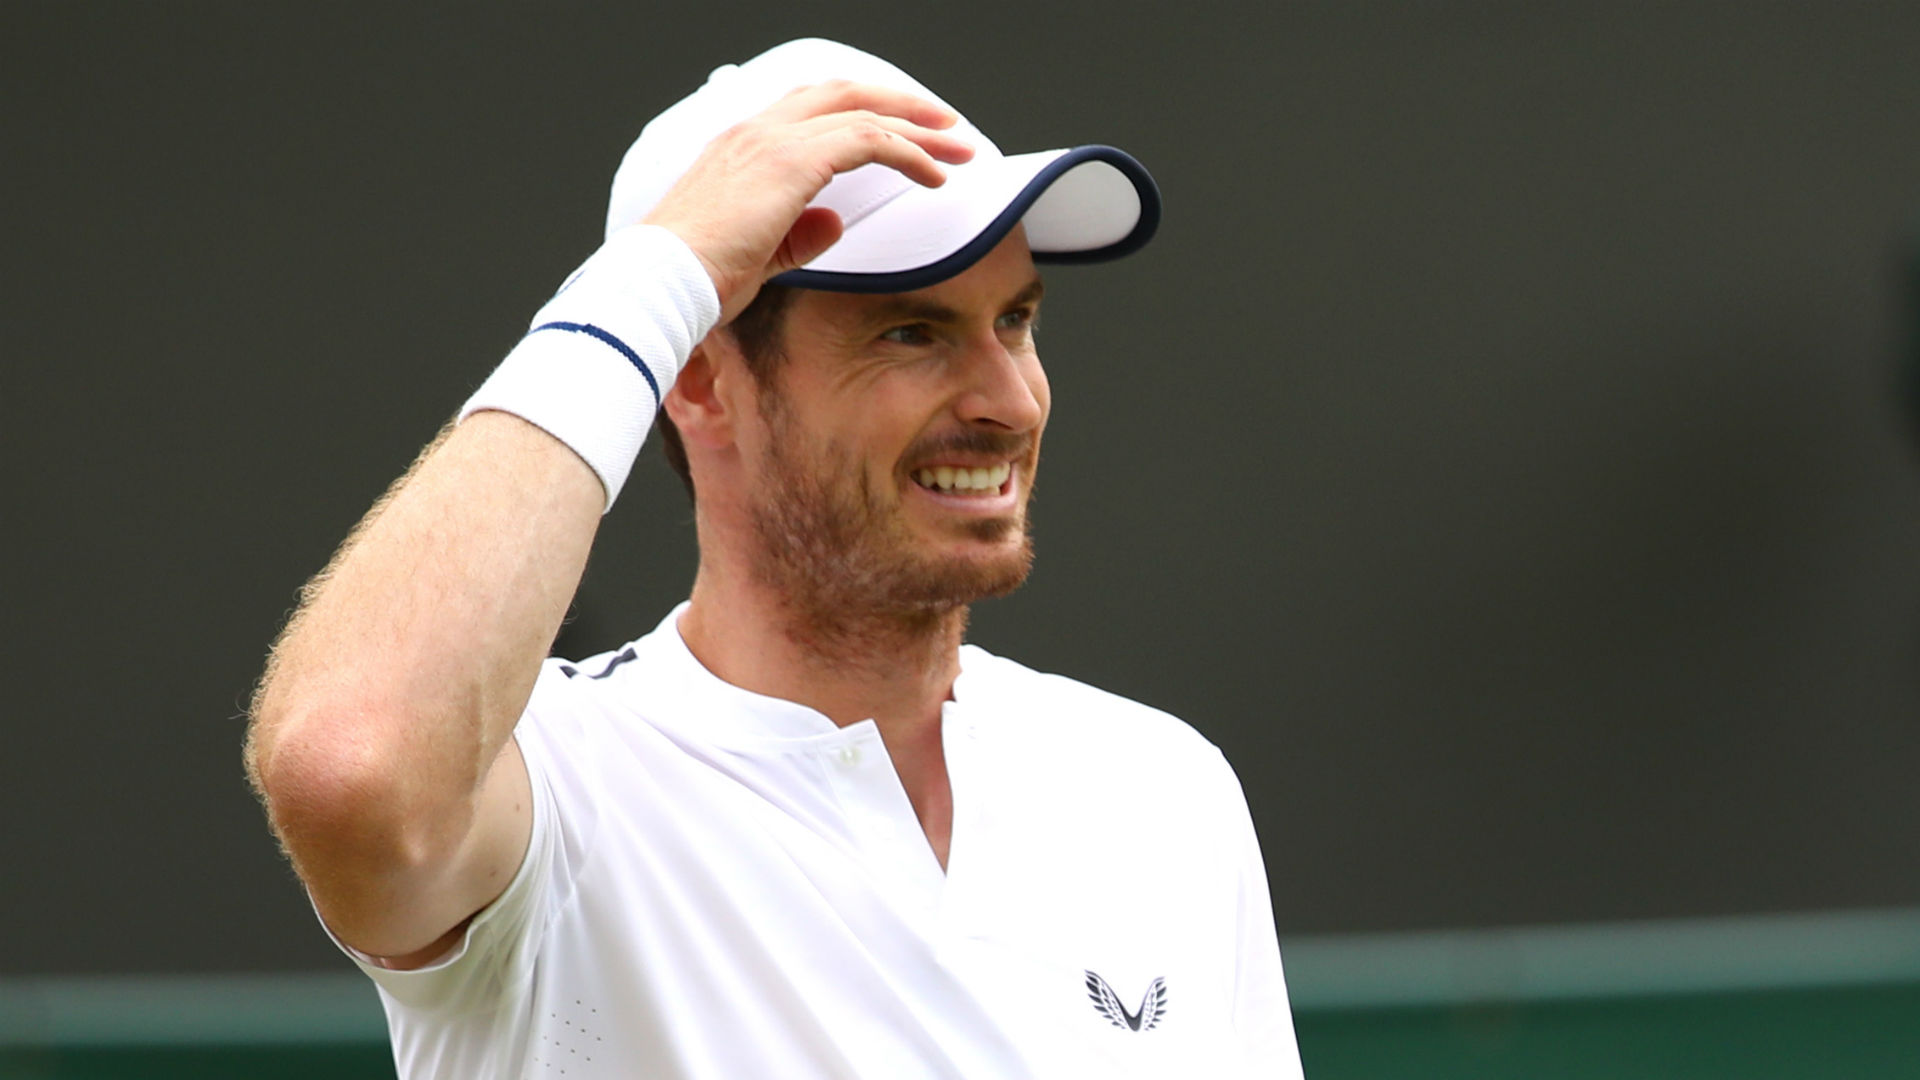 In a bid to return to his best form, Andy Murray may look to play at a lower level before tackling the ATP Tour again.